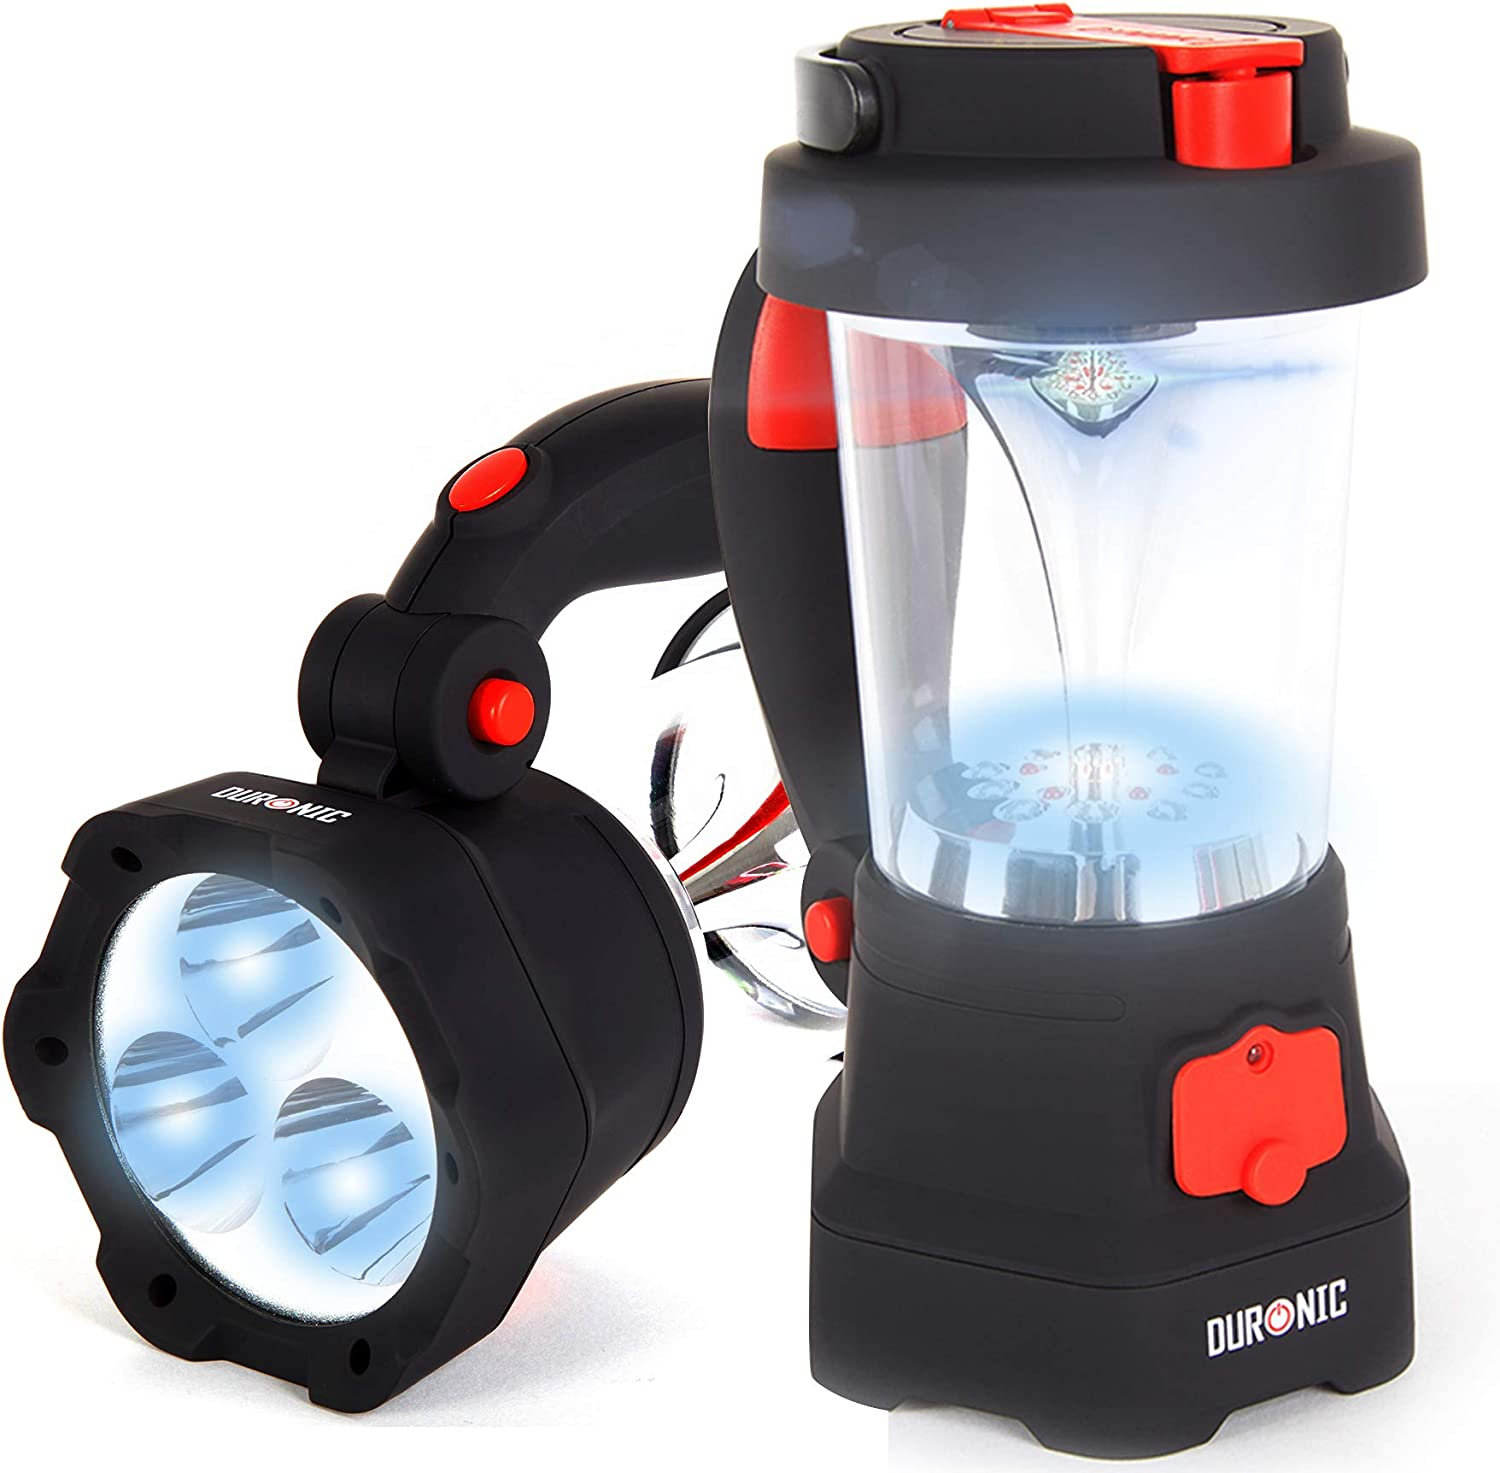 Duronic Hurricane 4 in 1 Rechargeable, Hand Crank, Self-Powered, Dynamo Flashlight, Torch, Lamp, Lantern - USB Charging Function